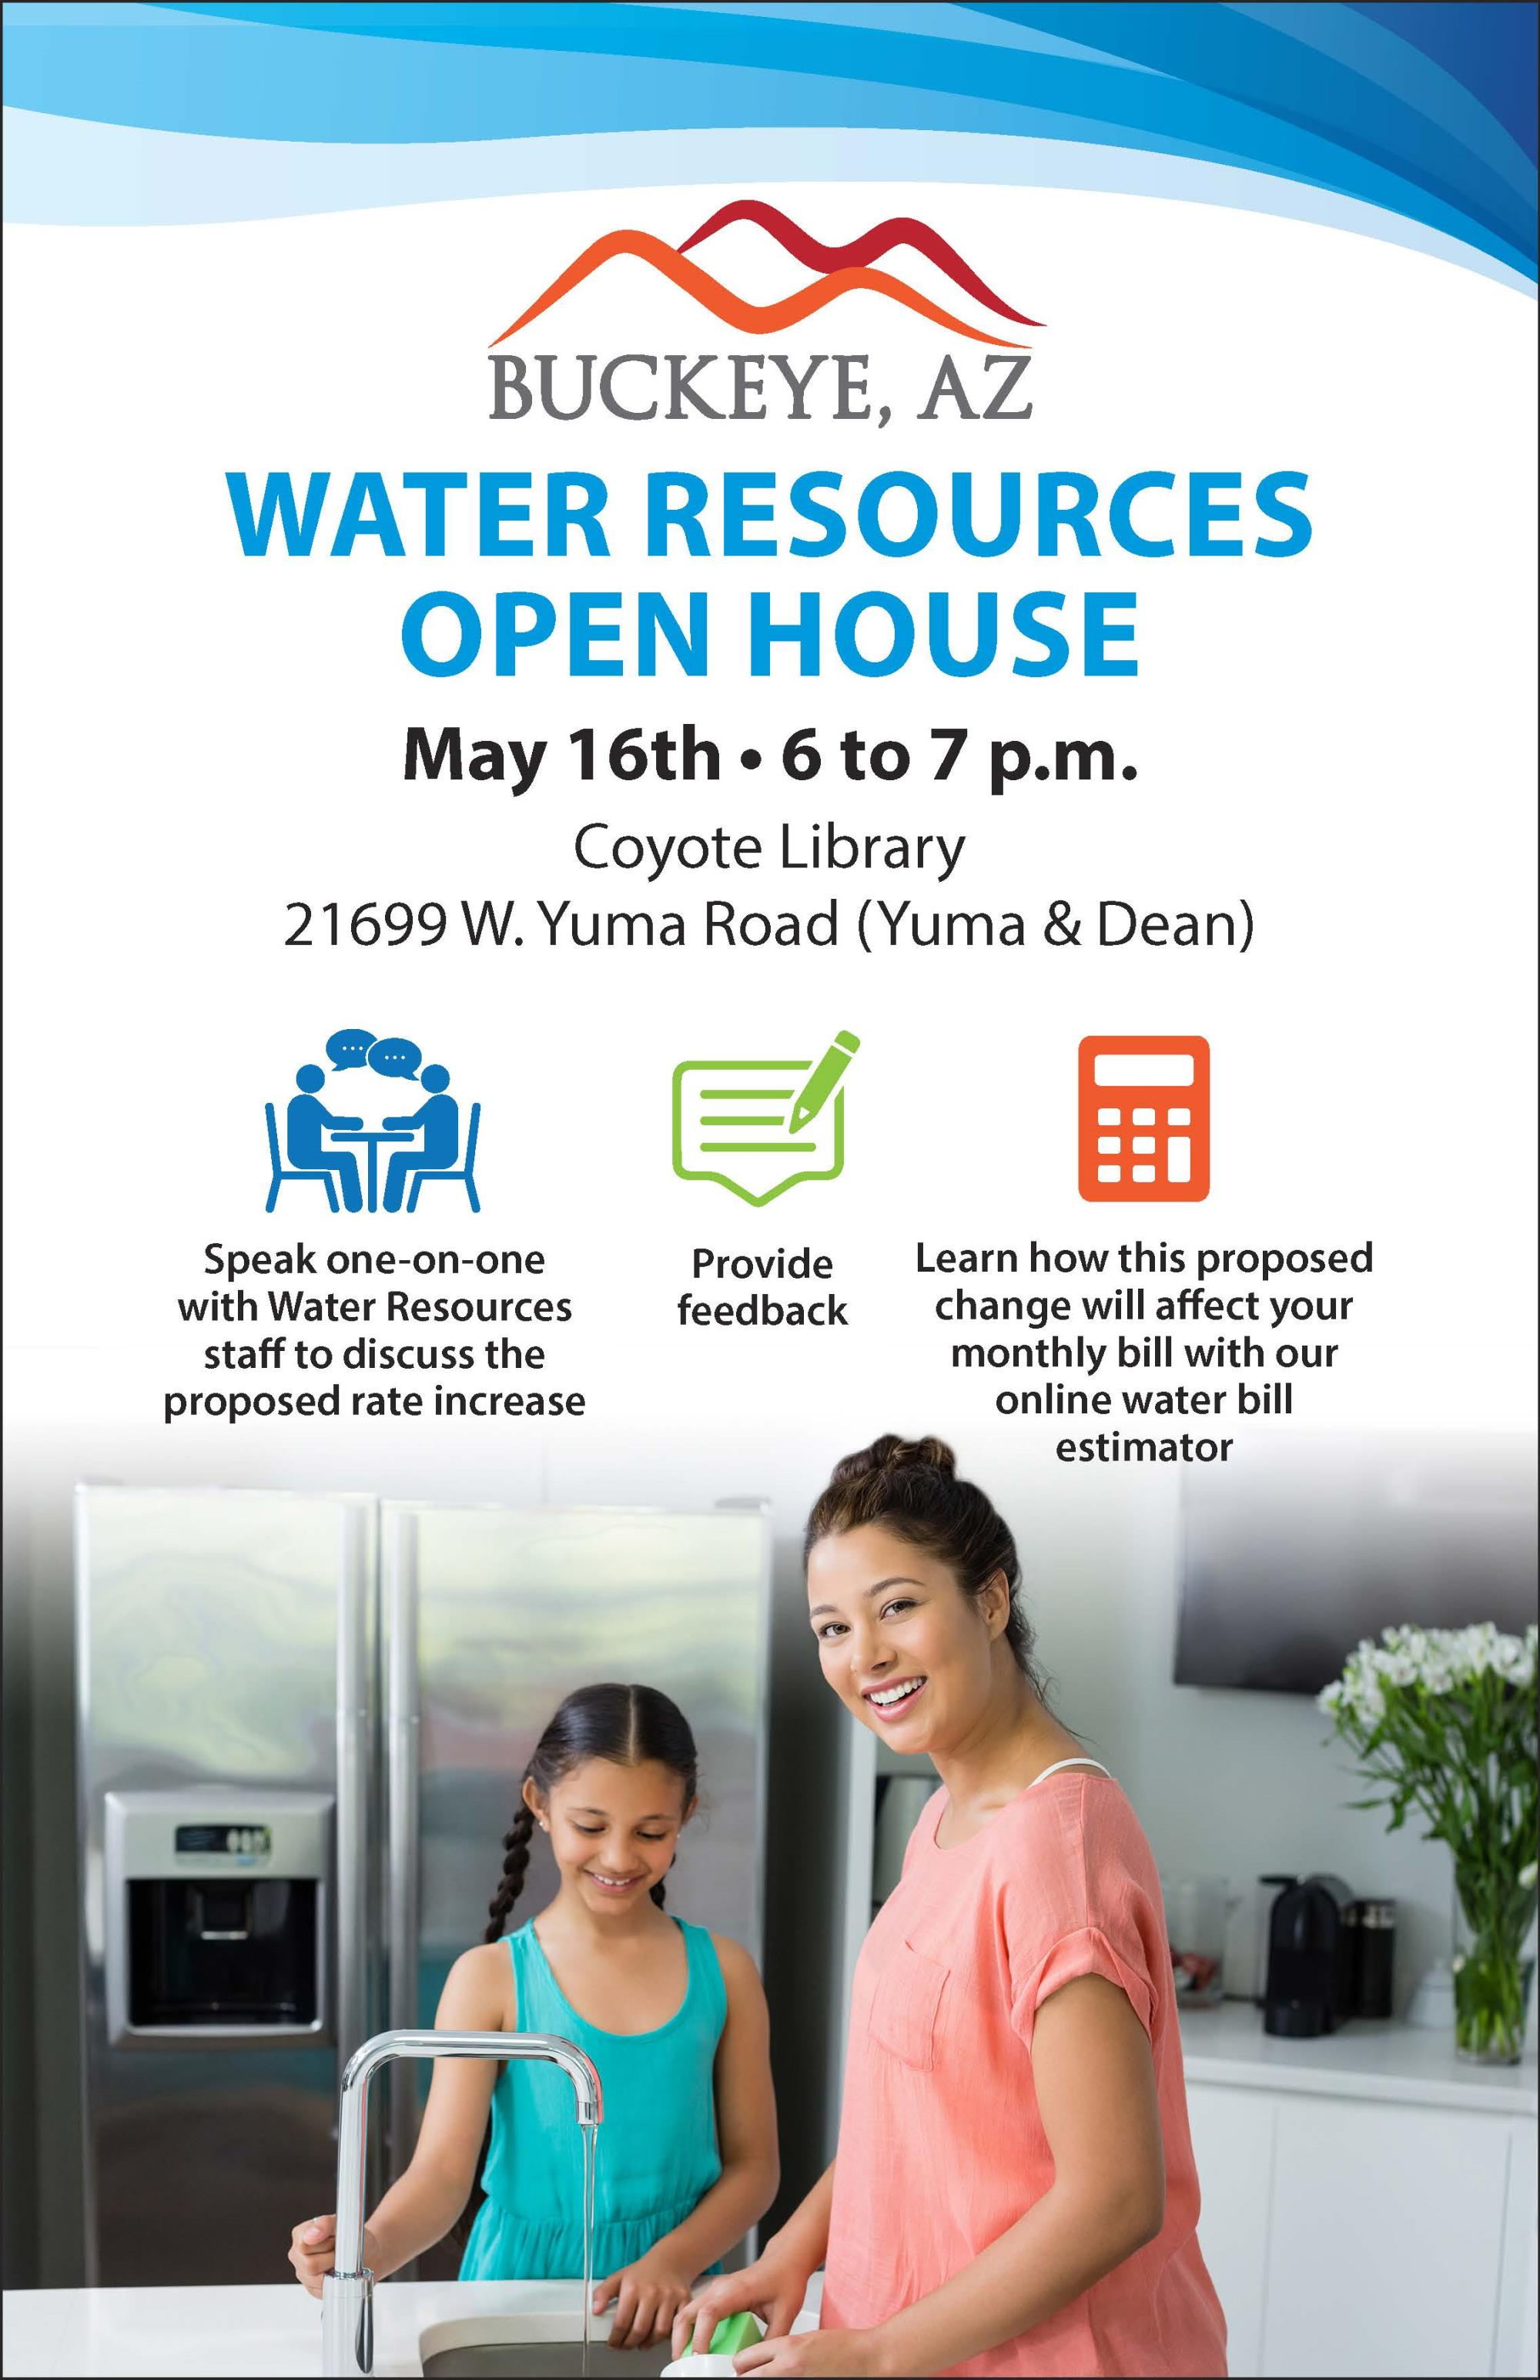 Water Services open house flyer